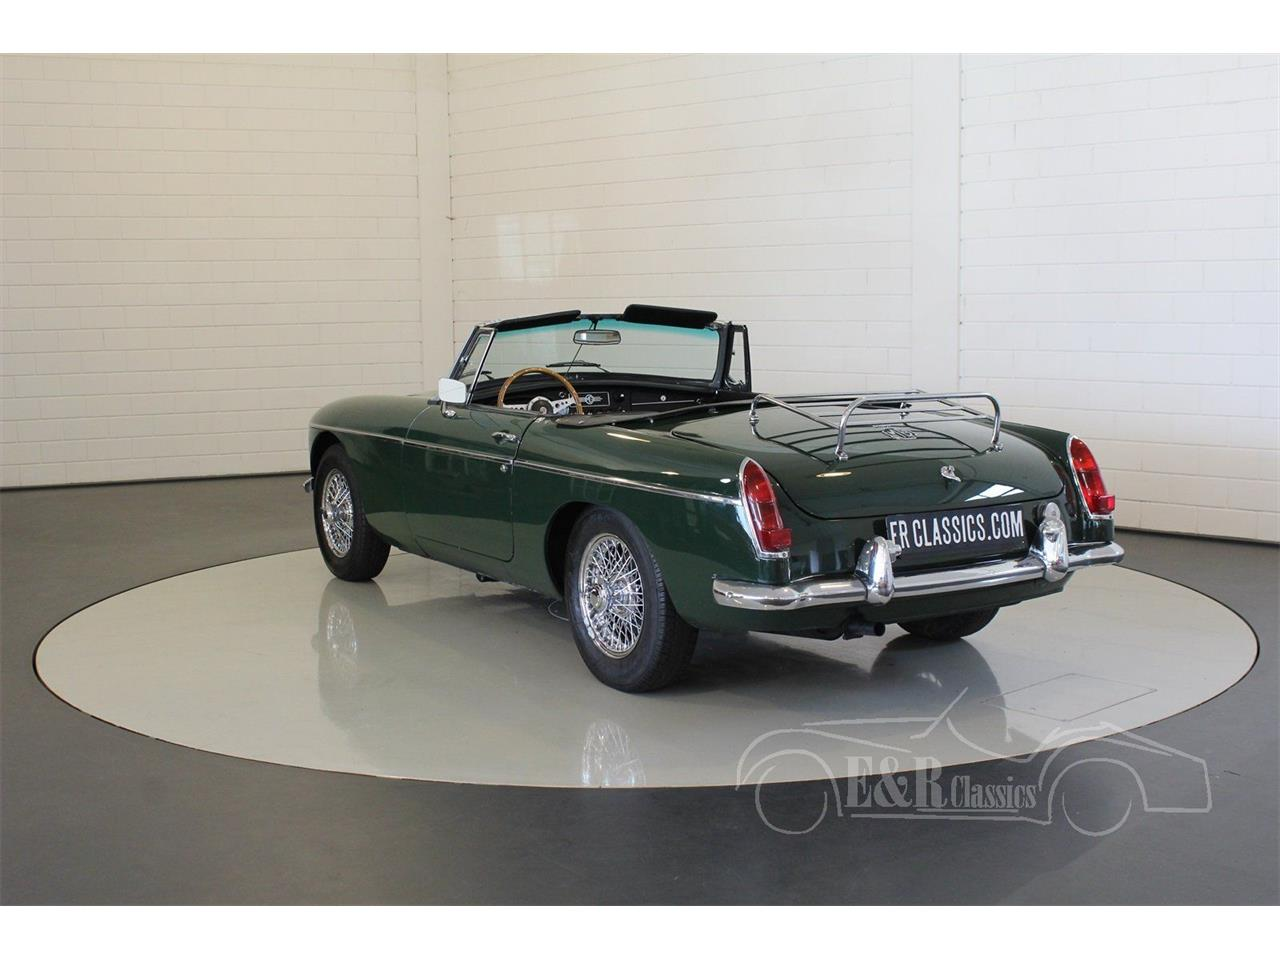 Large Picture of Classic '64 MG MGB located in Waalwijk noord brabant - $27,950.00 Offered by E & R Classics - Q178